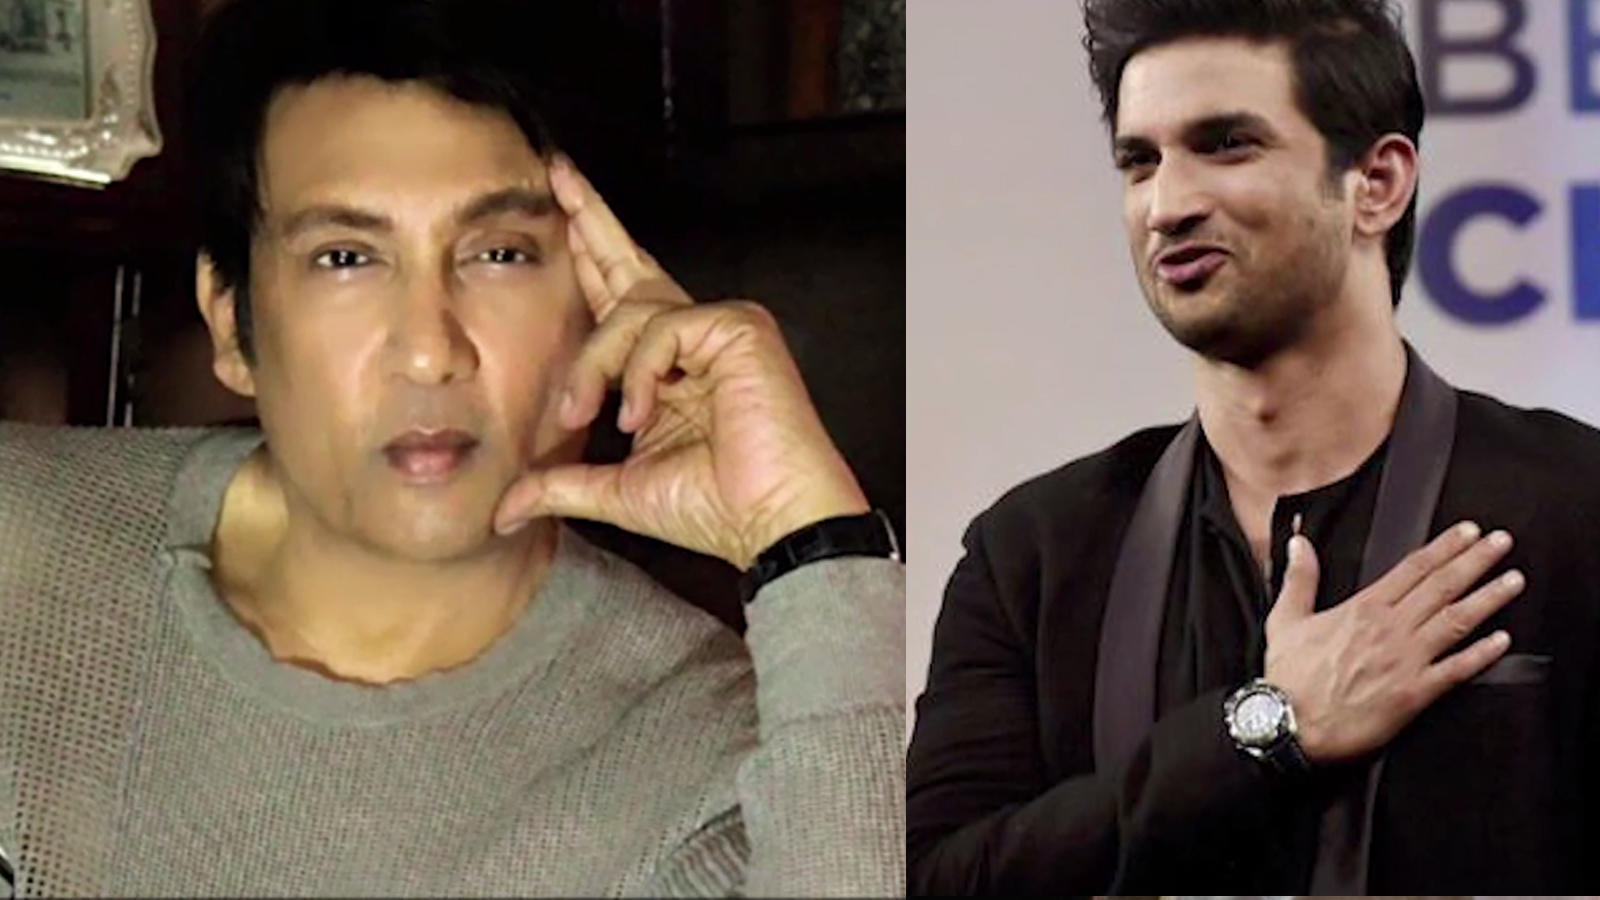 druggies-ko-marne-do-shekhar-suman-says-we-want-to-know-who-killed-sushant-singh-rajput